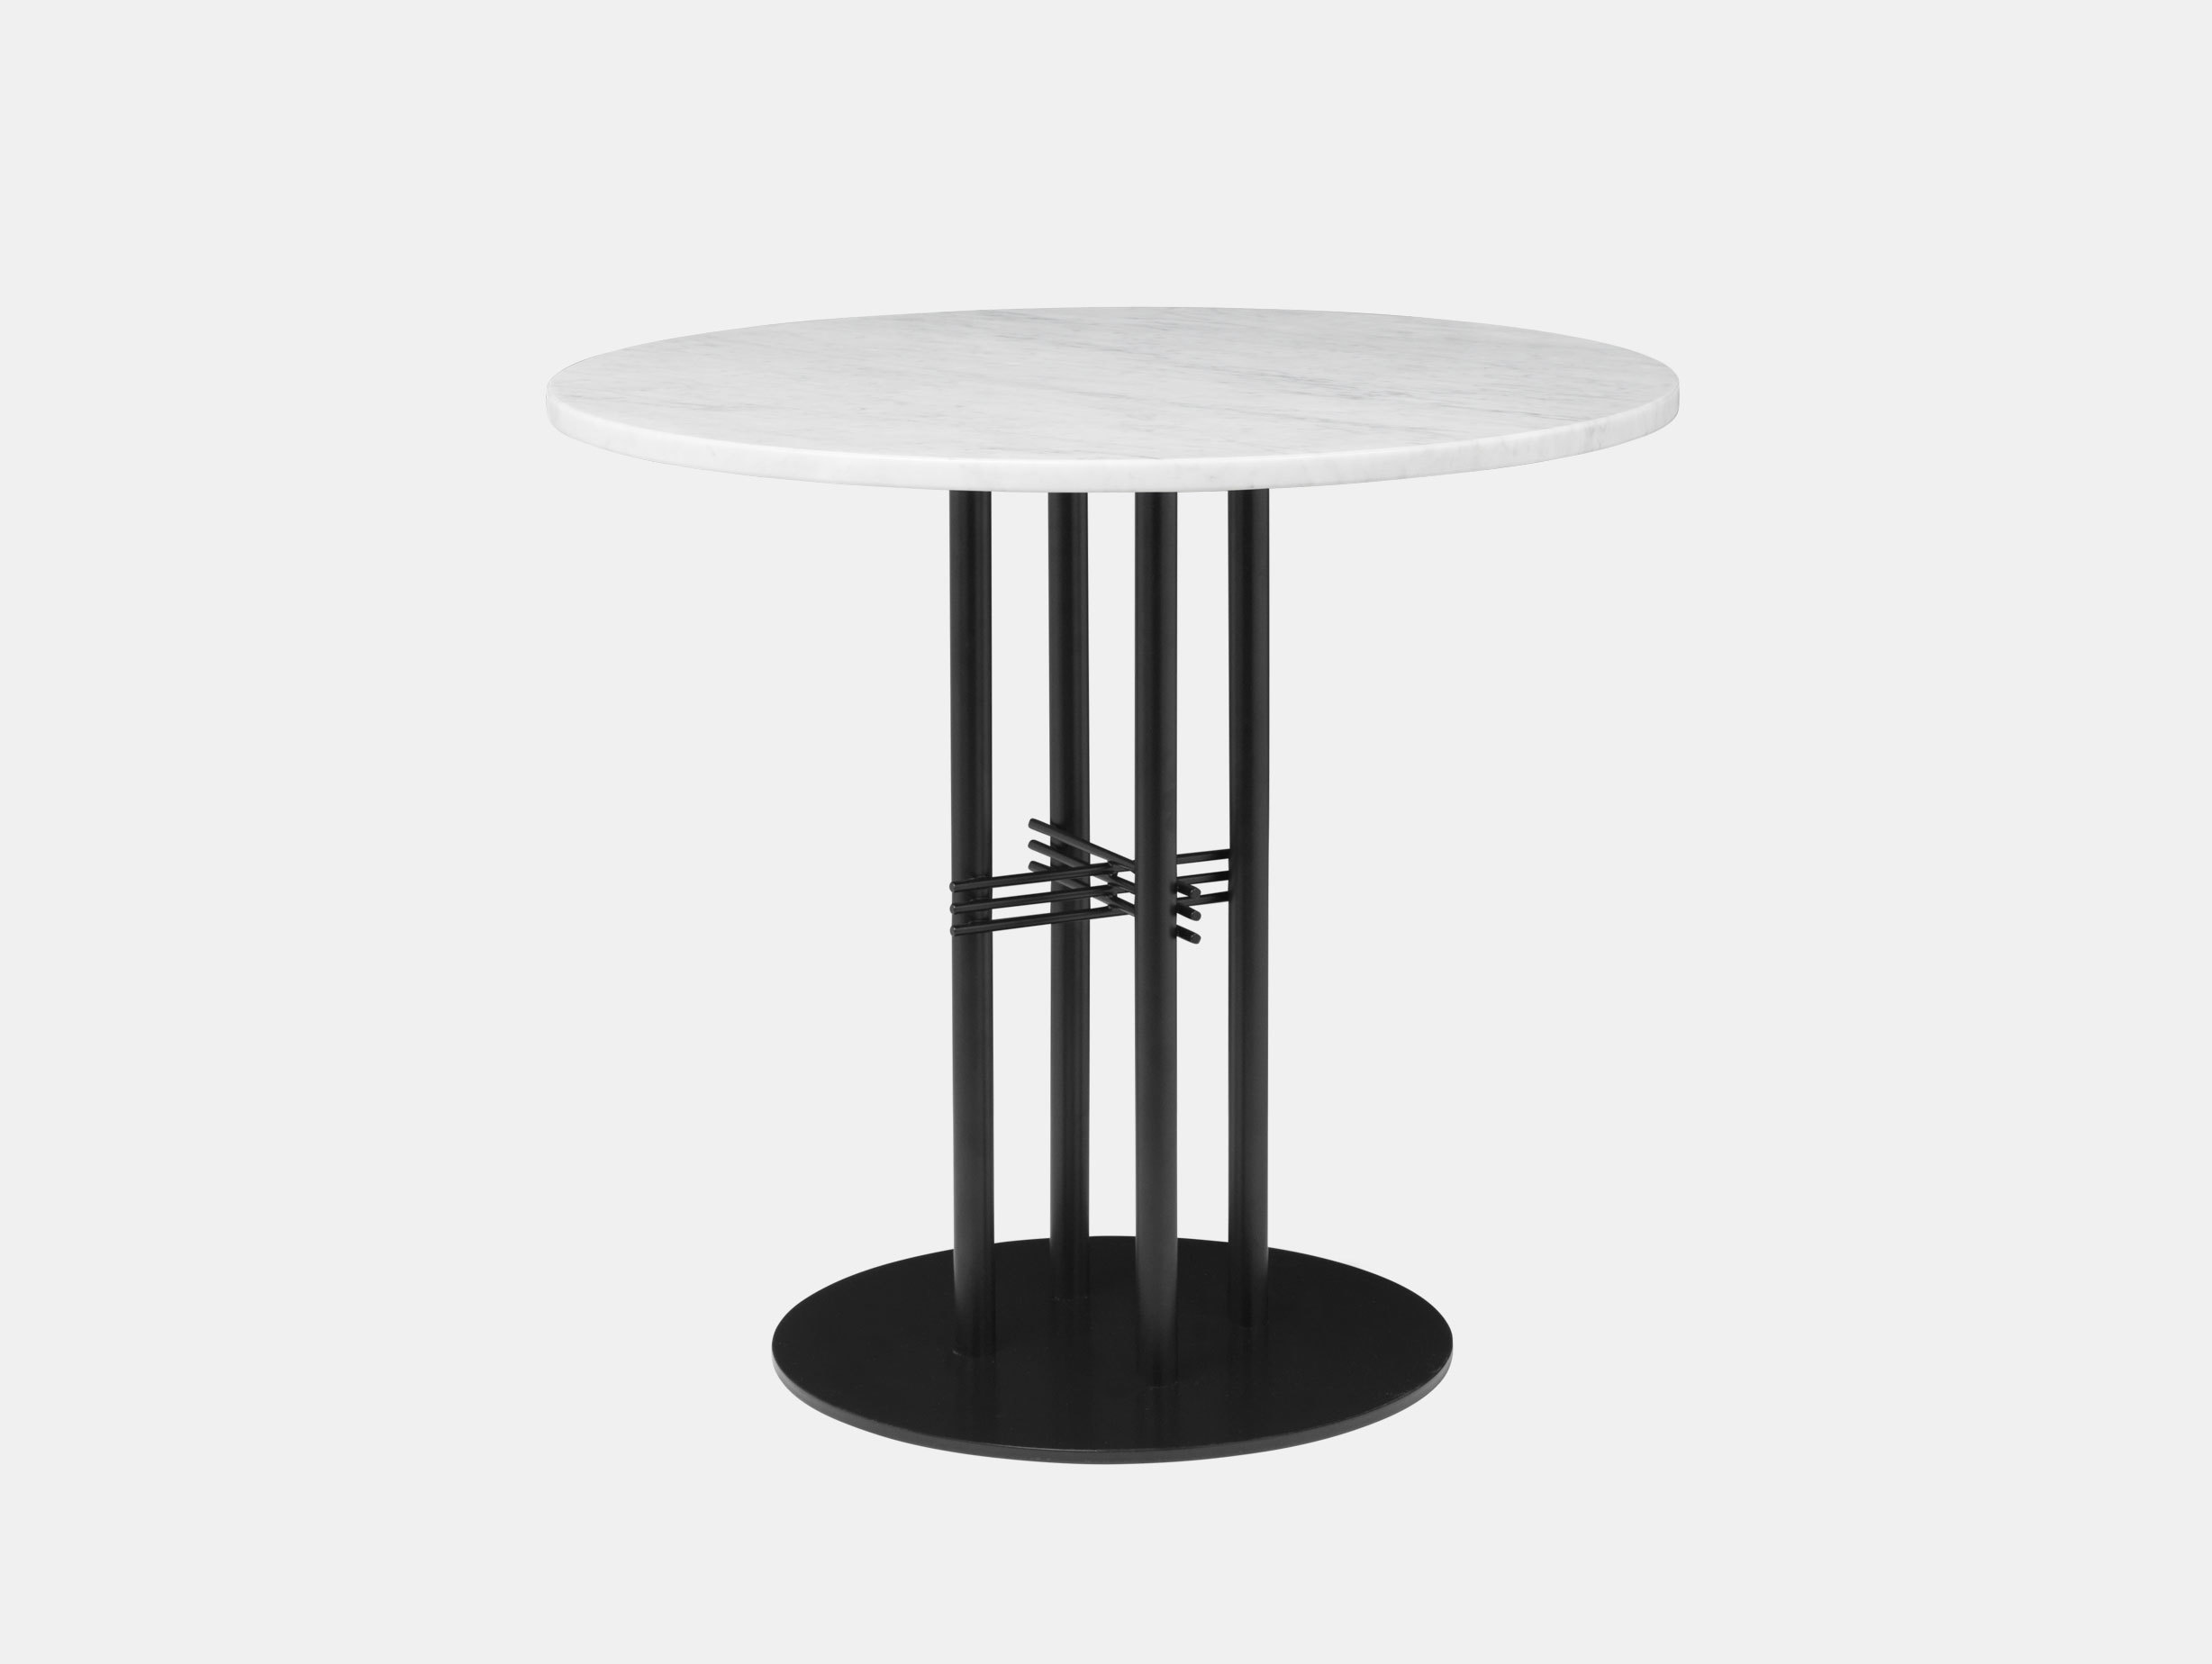 TS Column Dining Table image 1